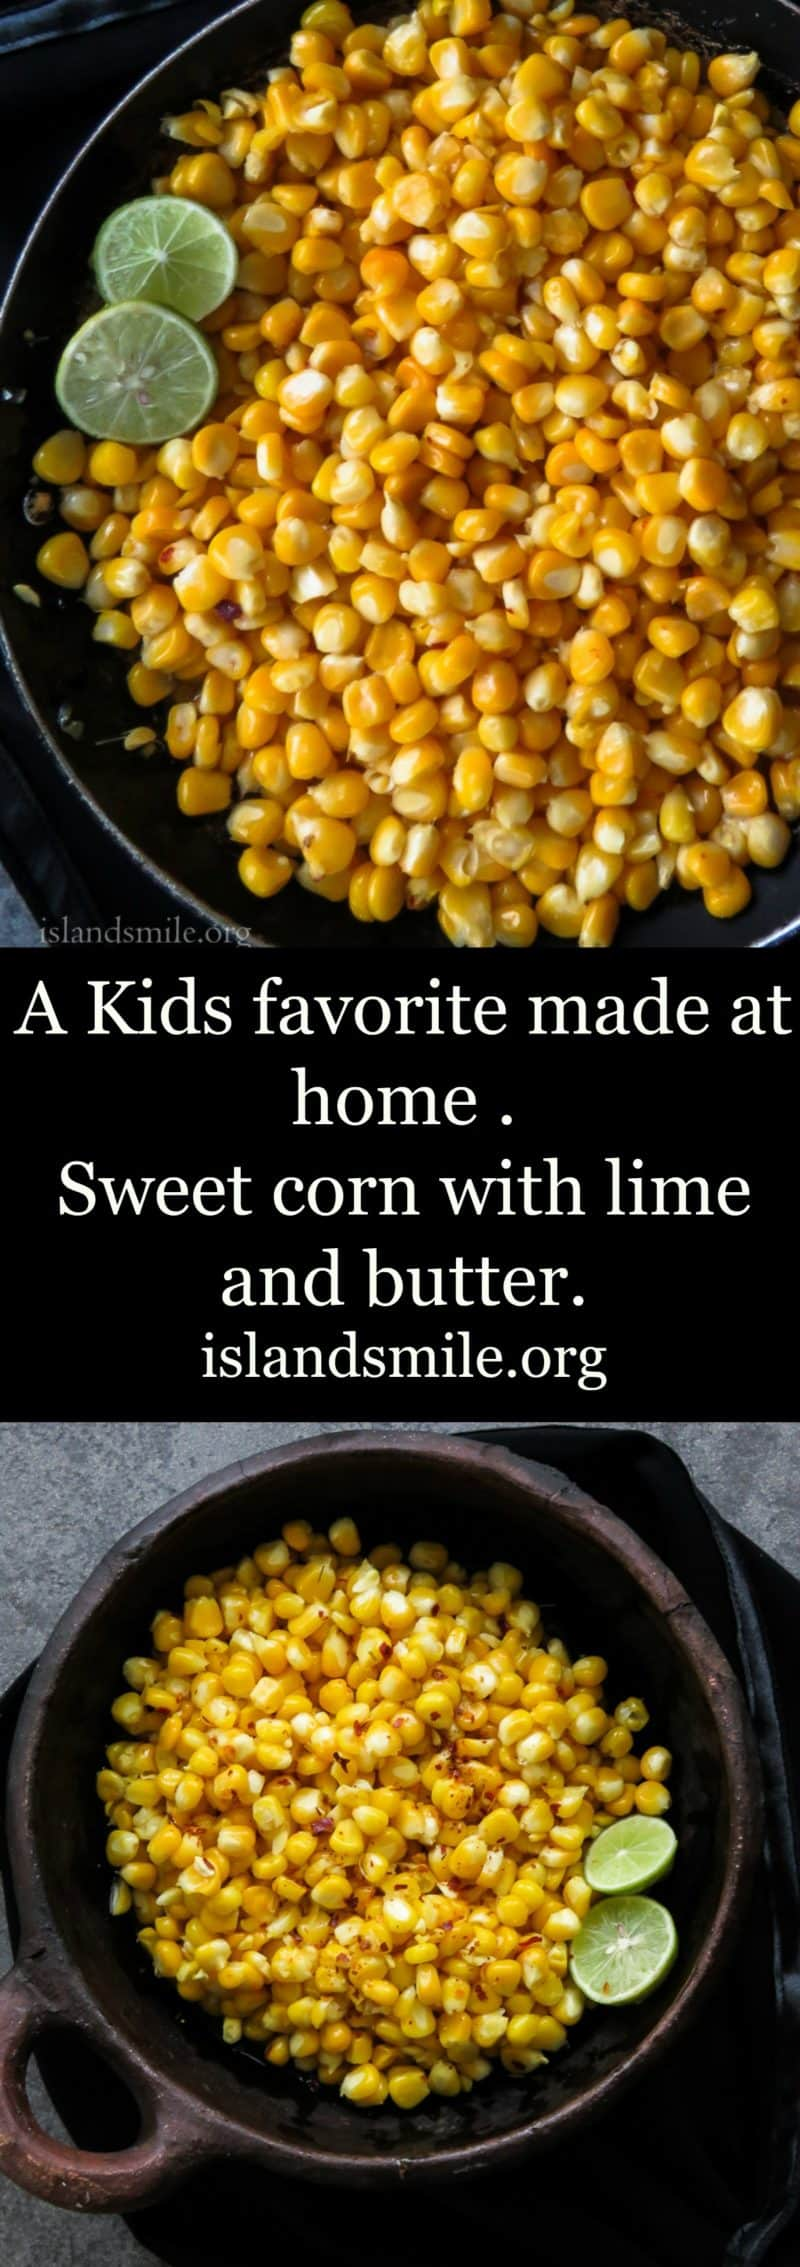 Sweet corn with lime and butter image